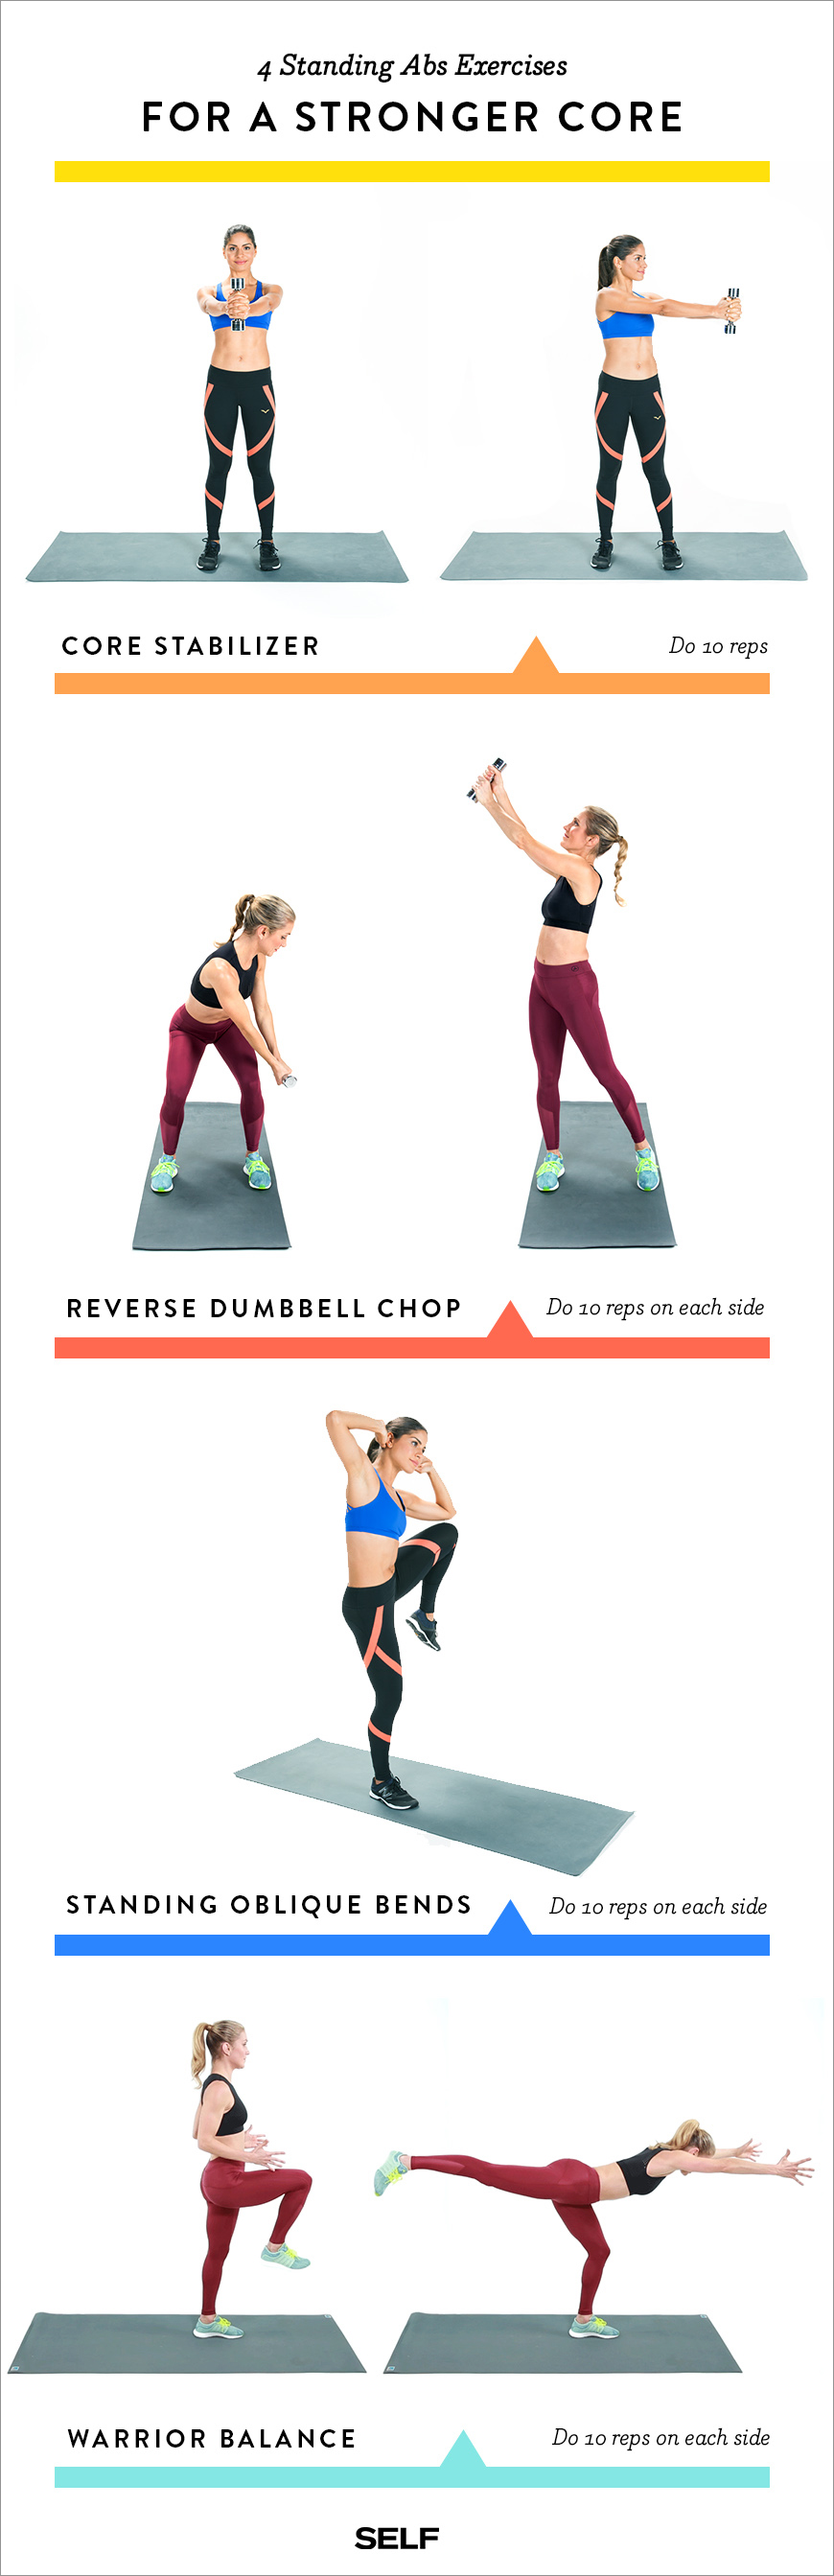 Standing abs posted by advancedweightlosstips ab workouts while you shouldnt neglect your floor abs workout entirely standing exercises are a great way to mix up your regular routine tyukafo